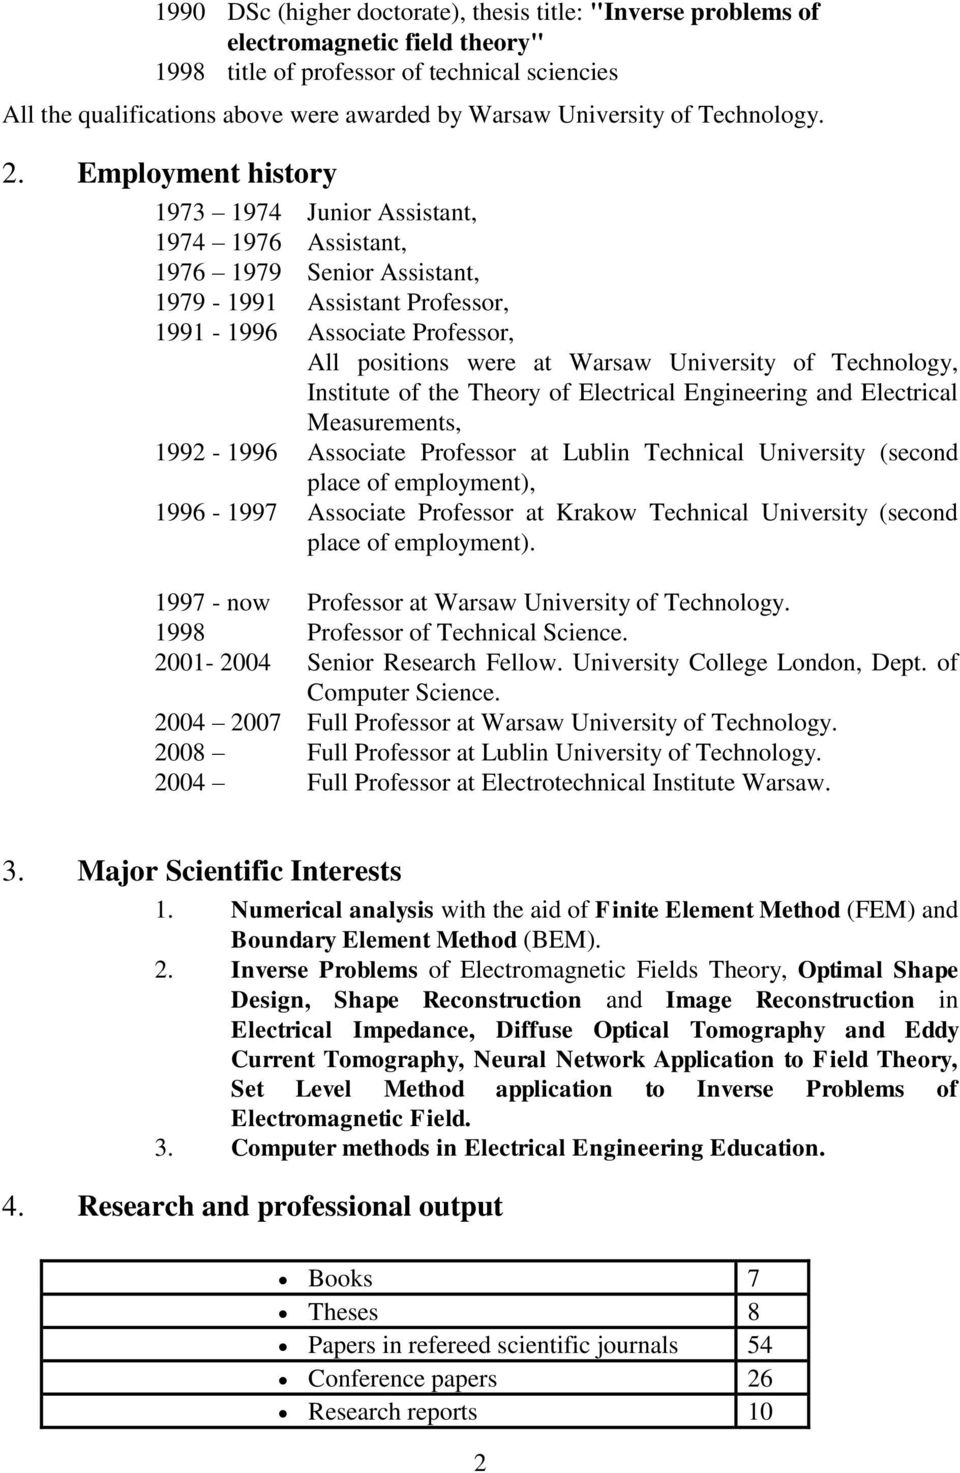 Employment history 1973 1974 Junior Assistant, 1974 1976 Assistant, 1976 1979 Senior Assistant, 1979-1991 Assistant Professor, 1991-1996 Associate Professor, All positions were at Warsaw University